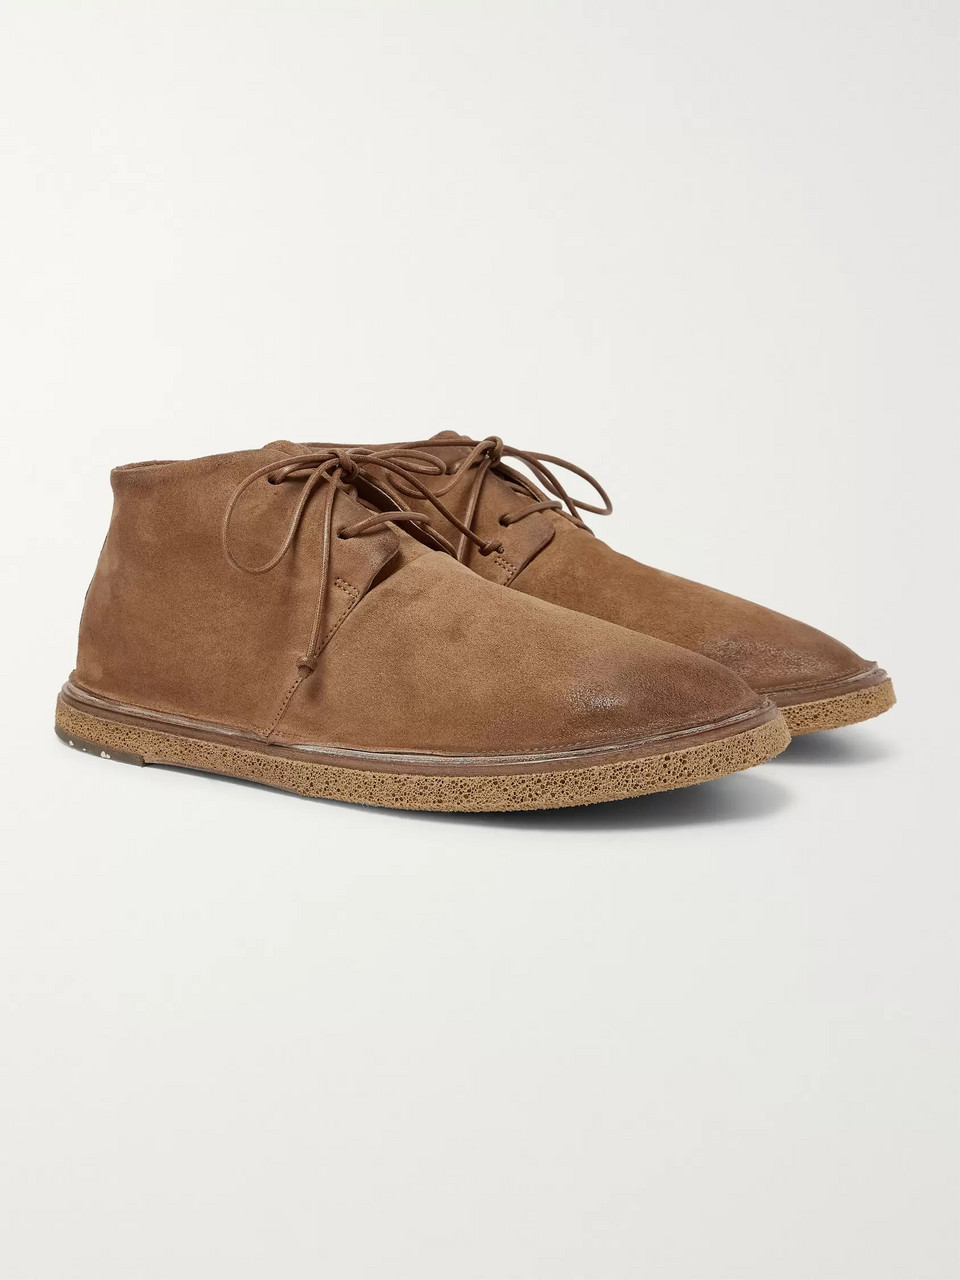 Marsell Stag Leather Chukka Boots